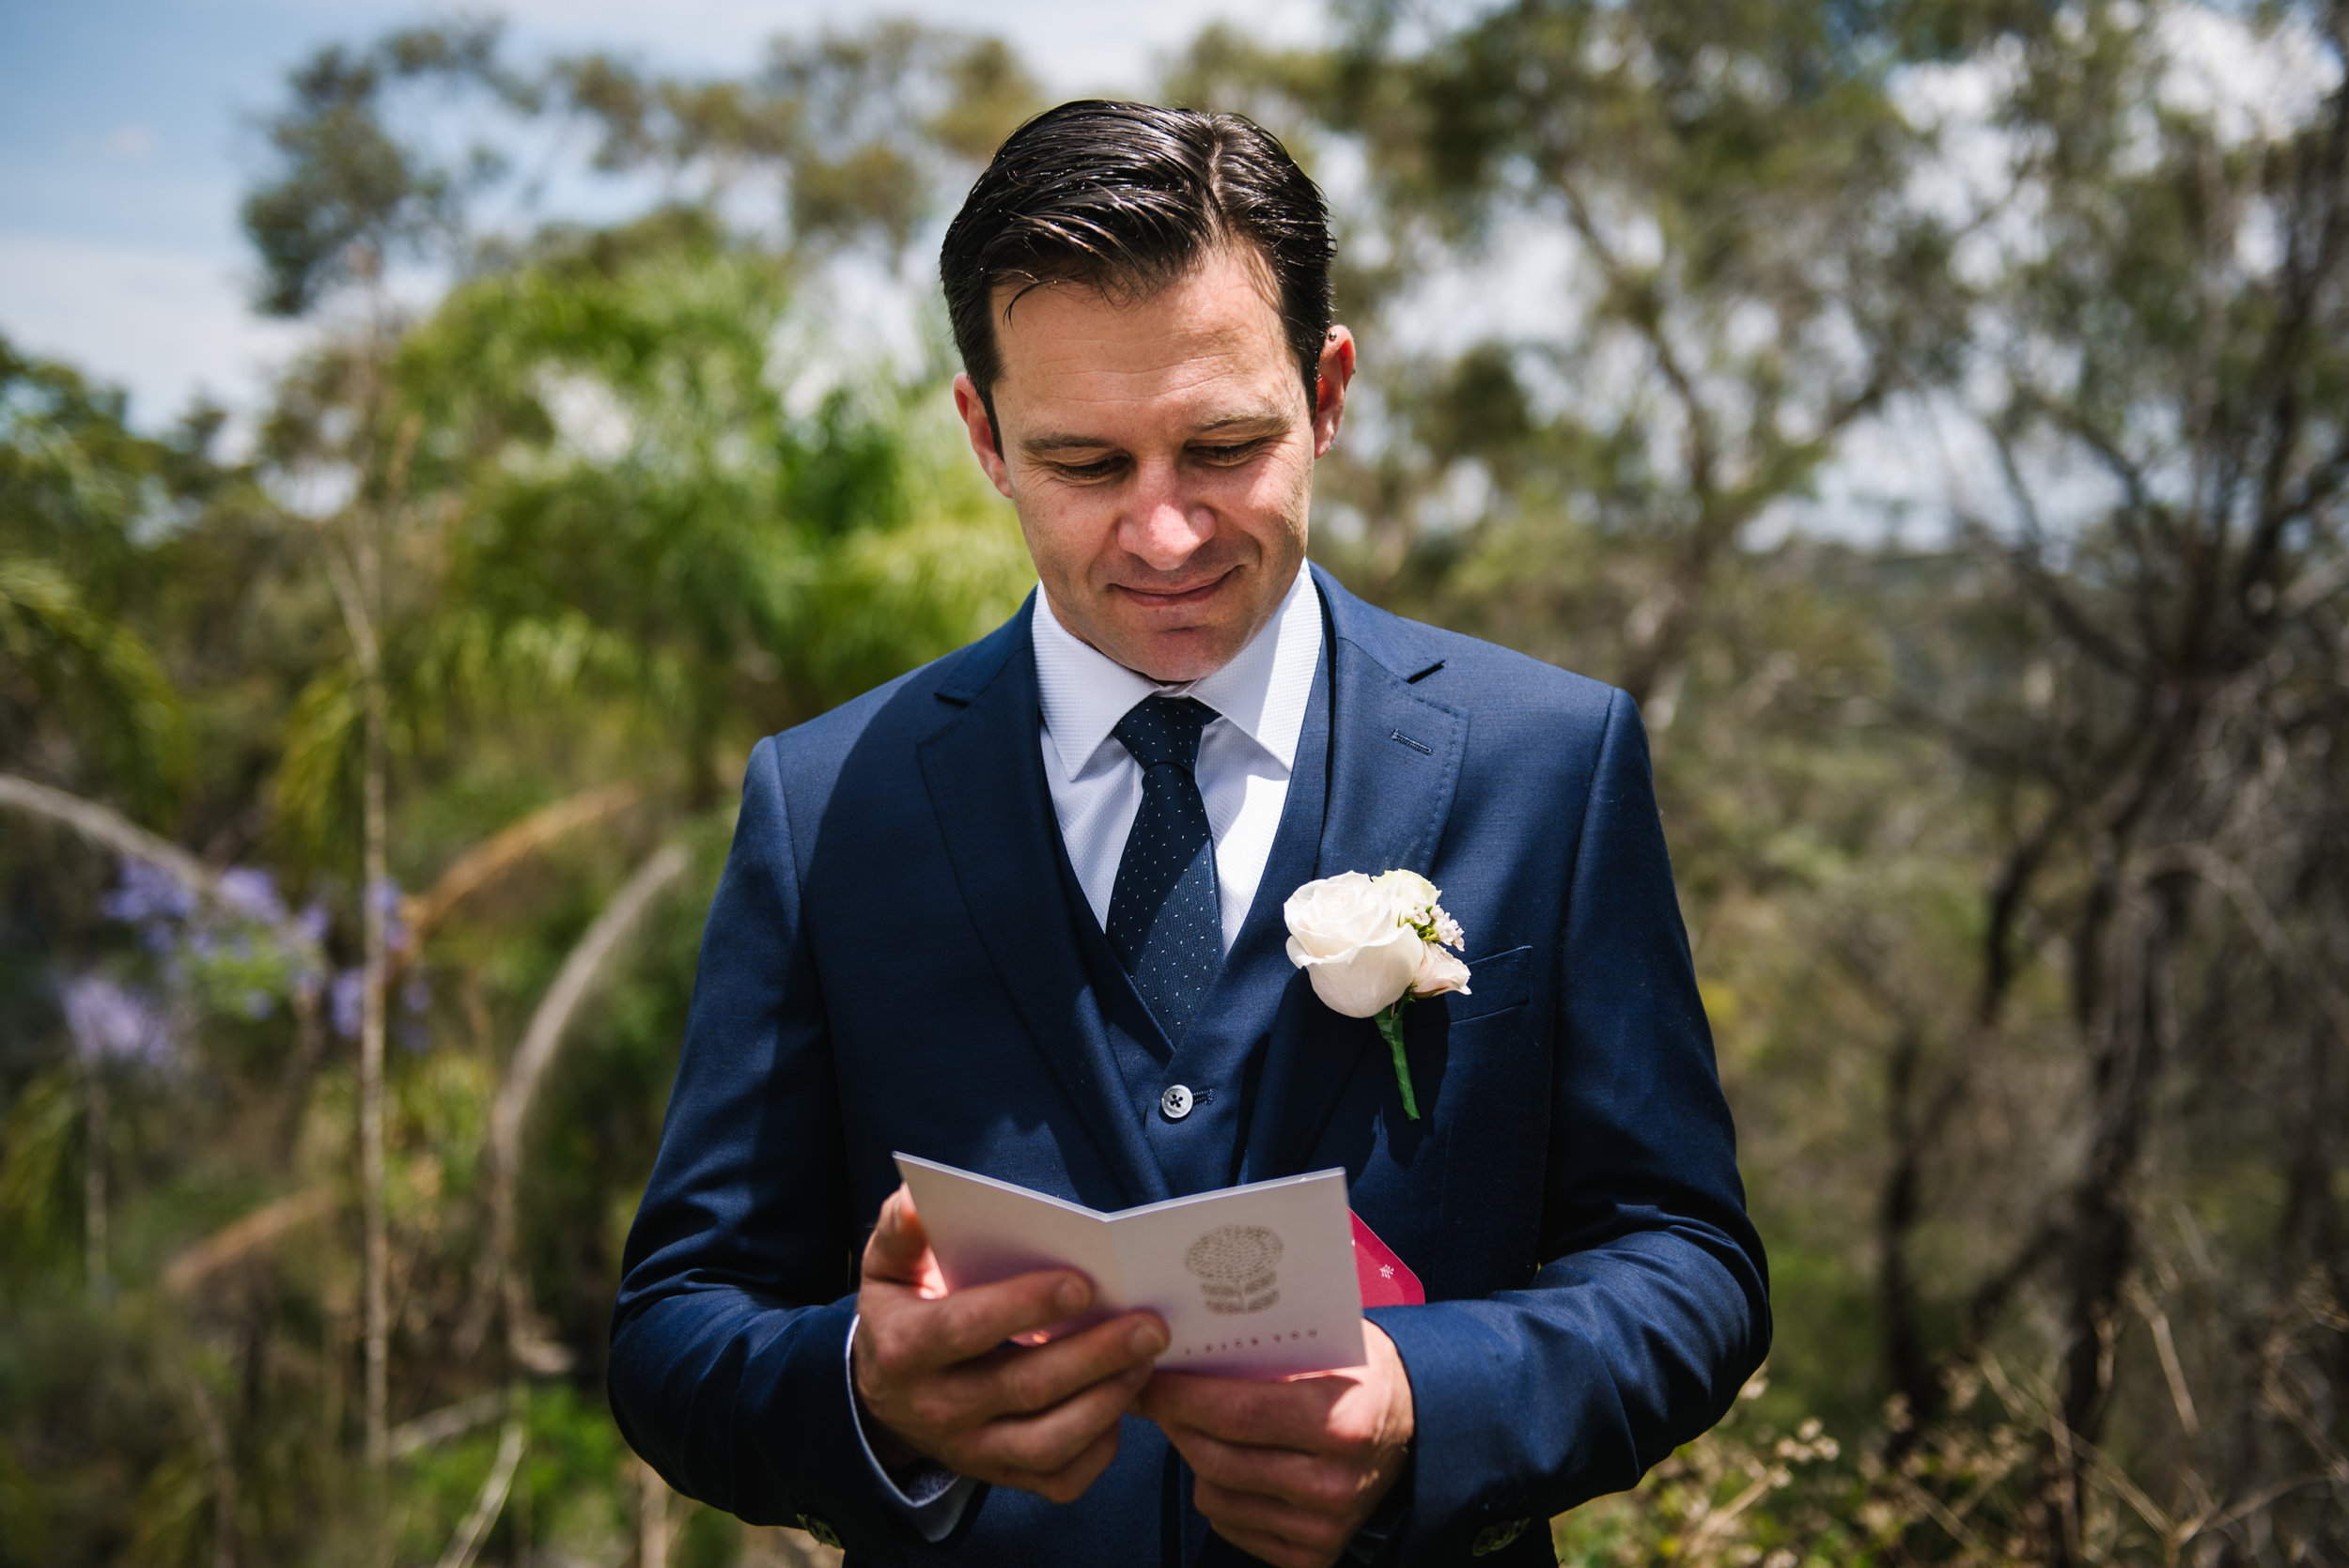 Groom reading card from bride on wedding day